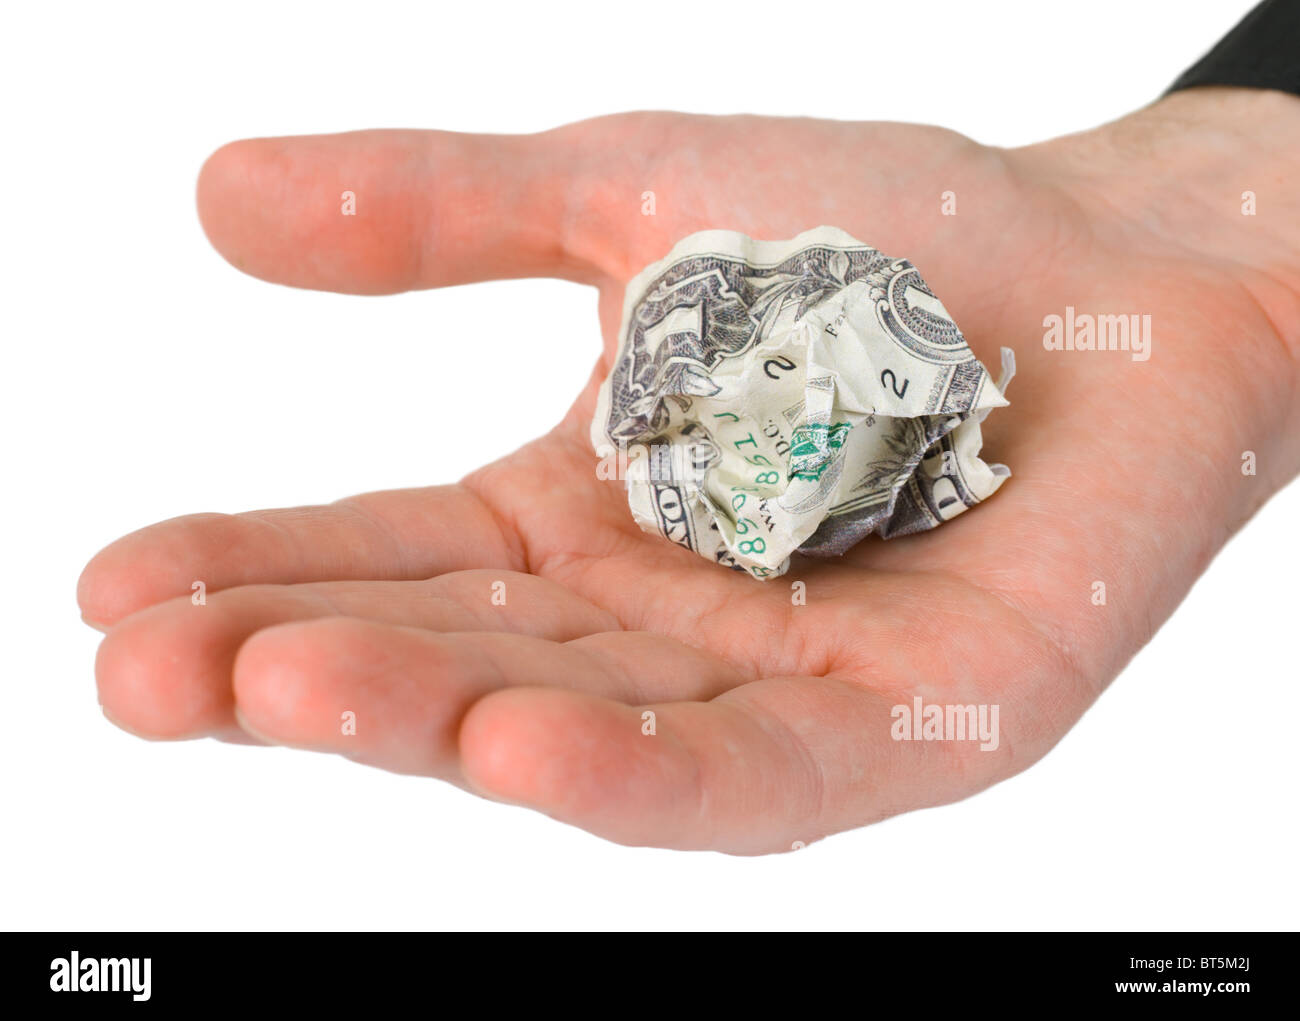 Male hand holding crumpled dollar photographed on a white background - Stock Image